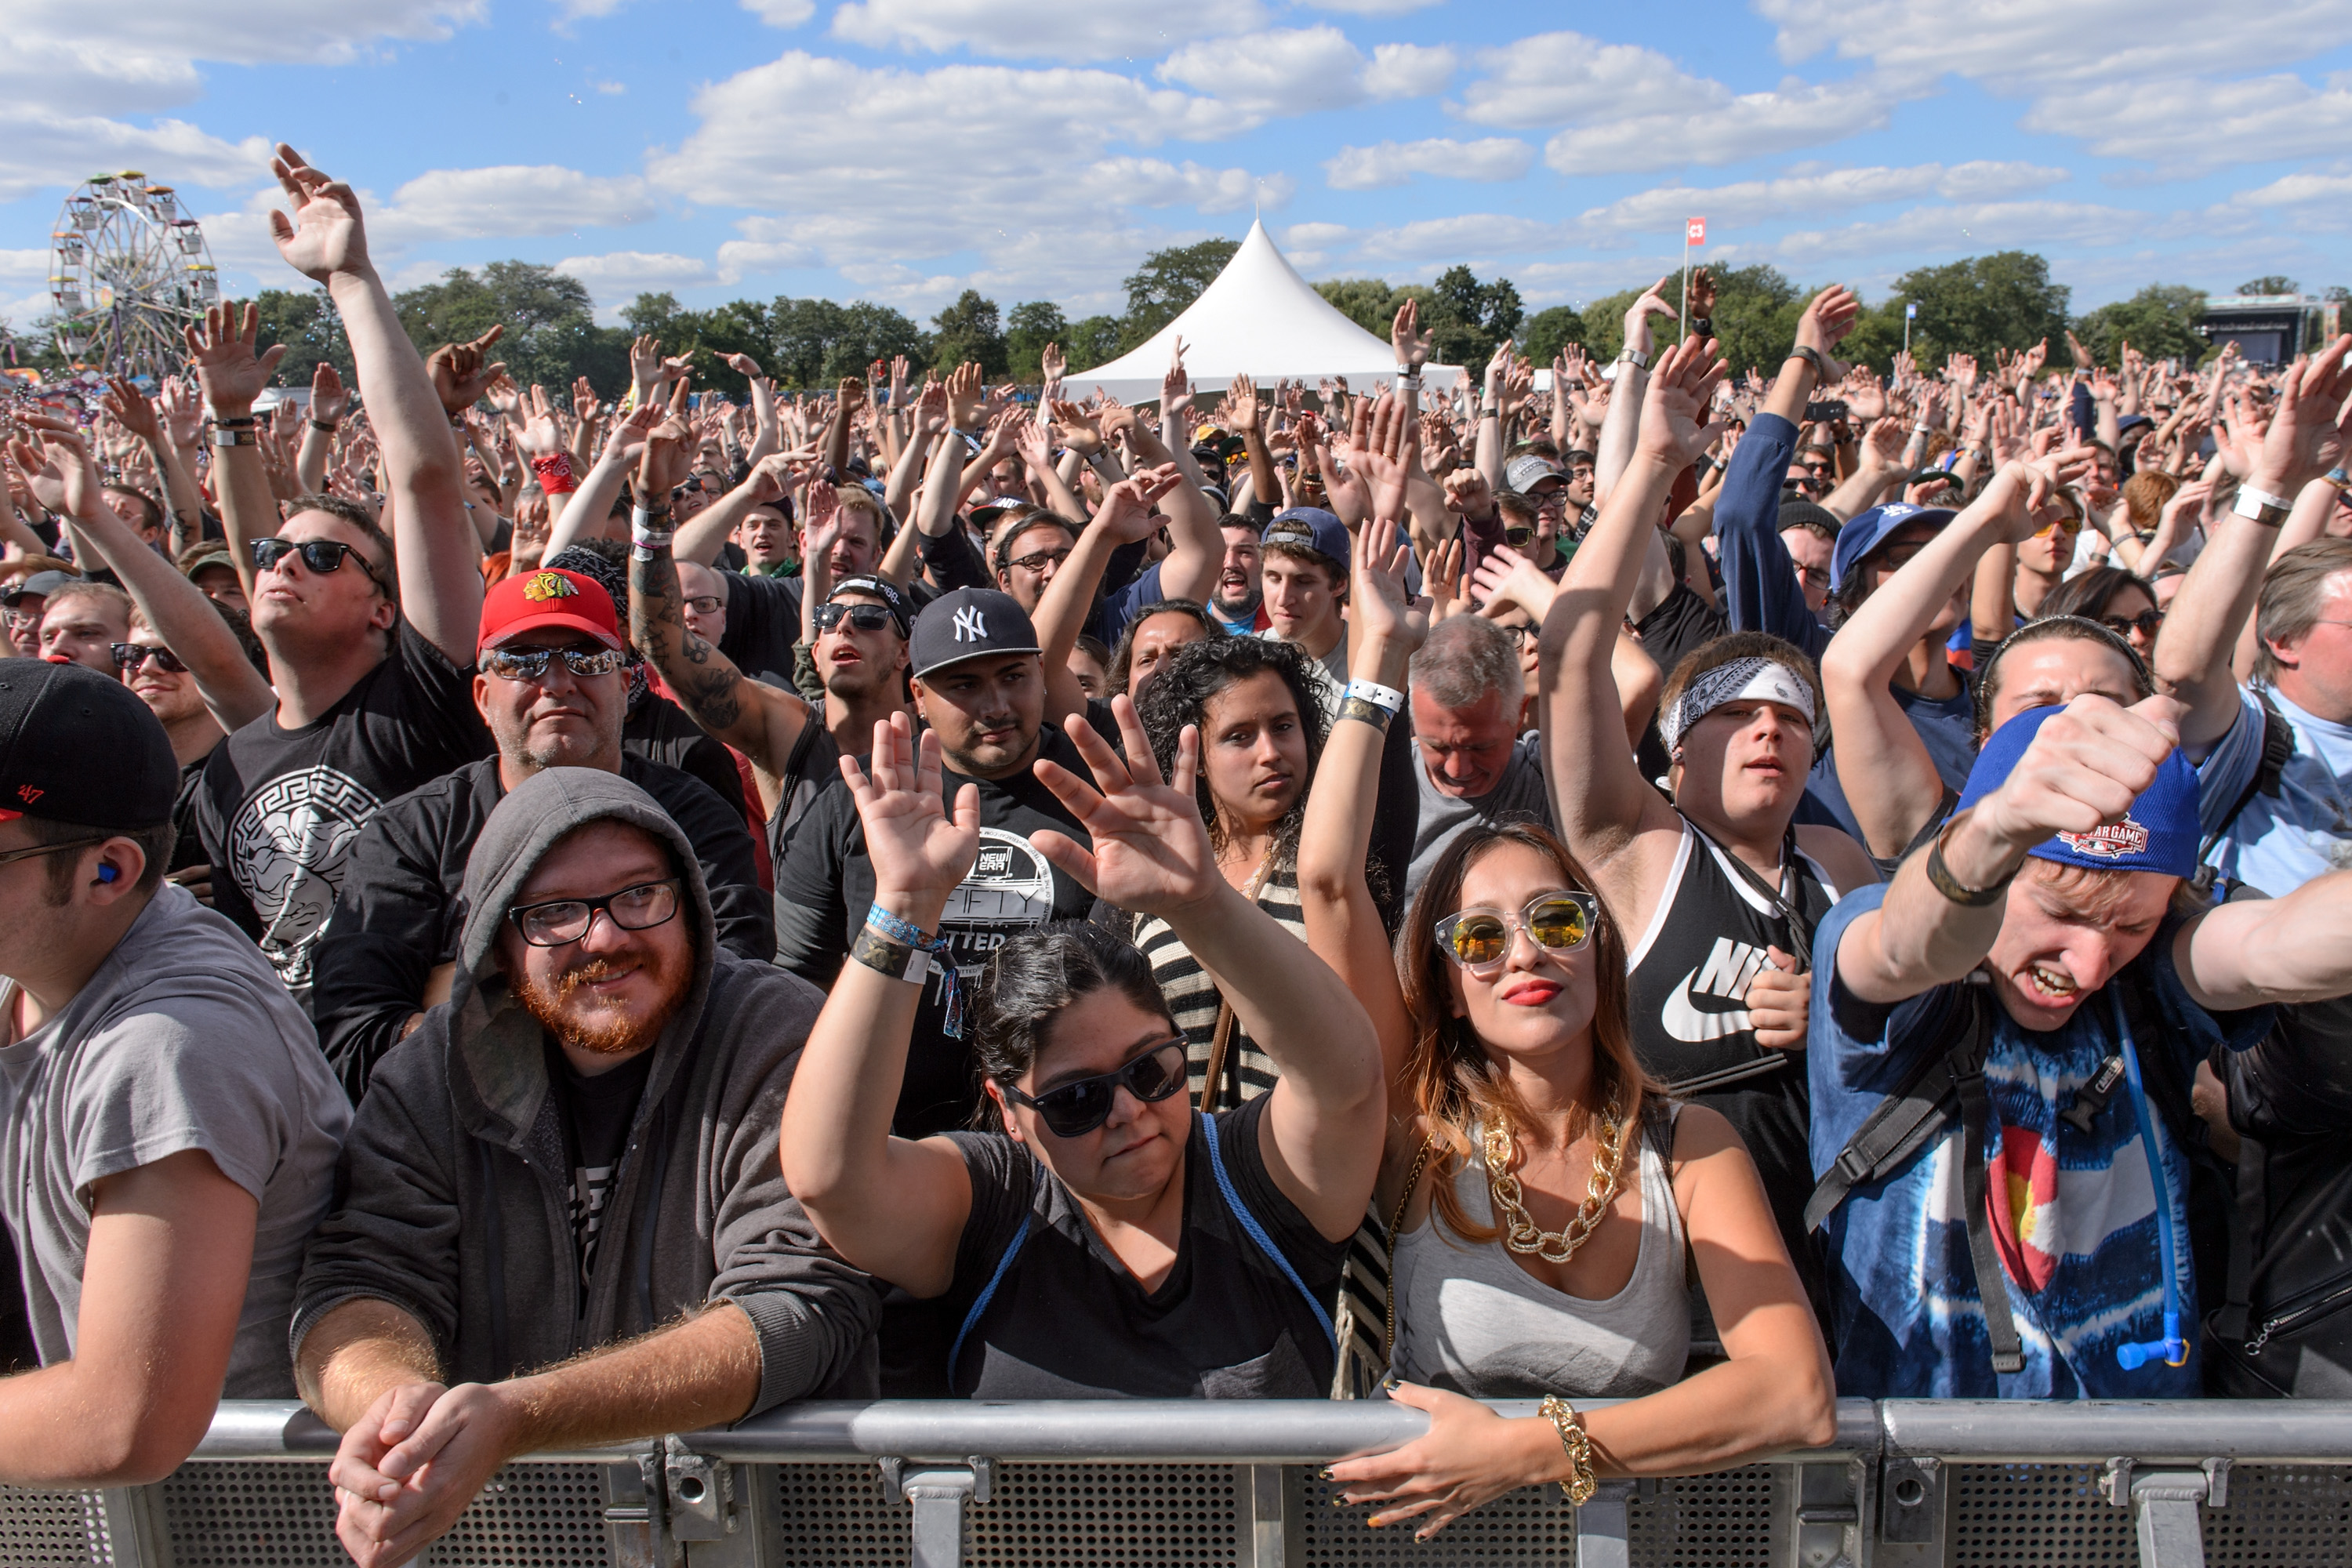 Where to Eat and Drink Near Riot Fest in Douglas Park